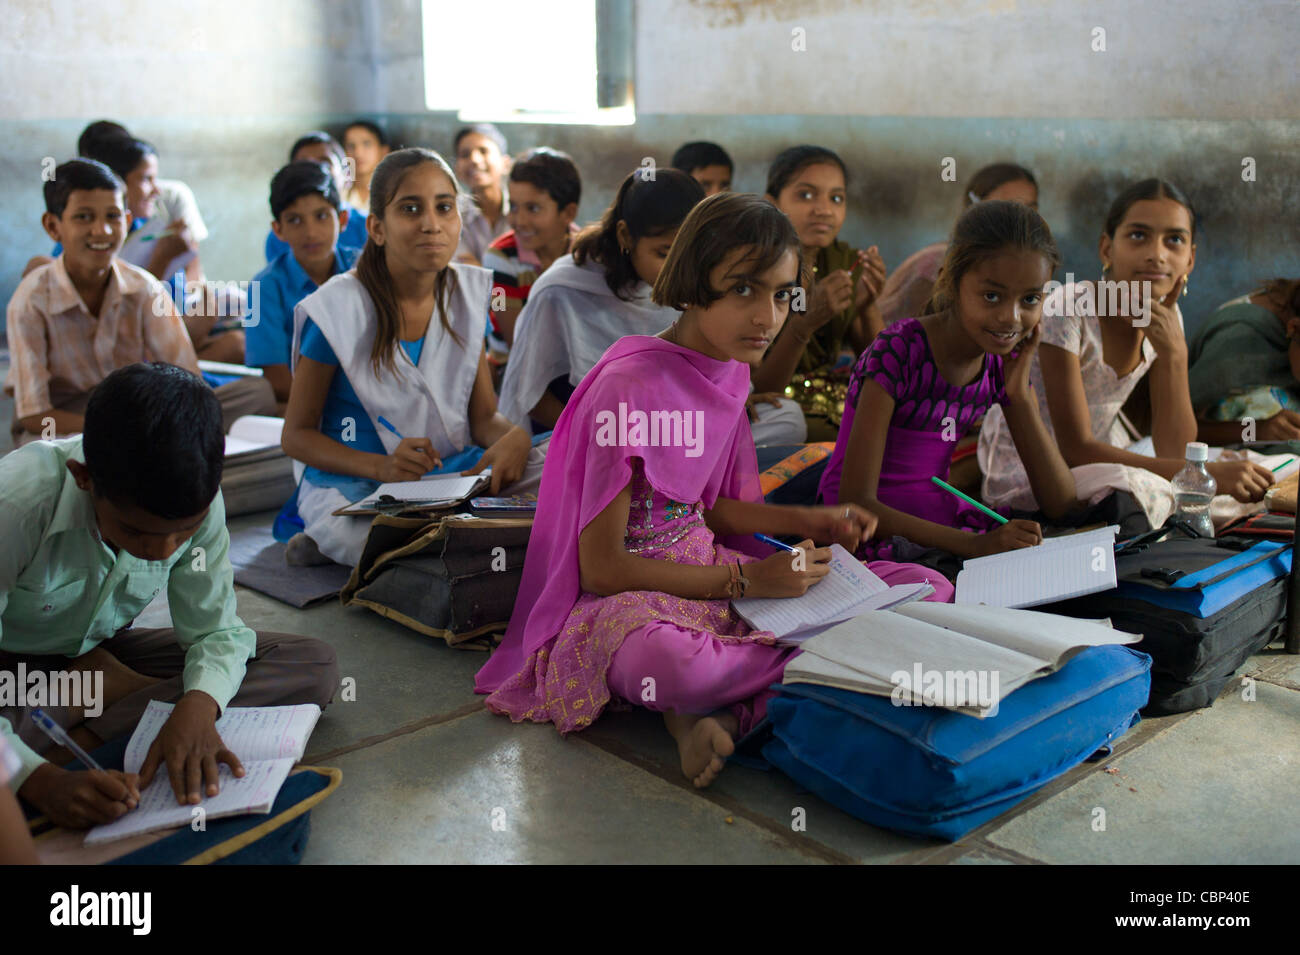 India's obsession with English is depriving many children ...